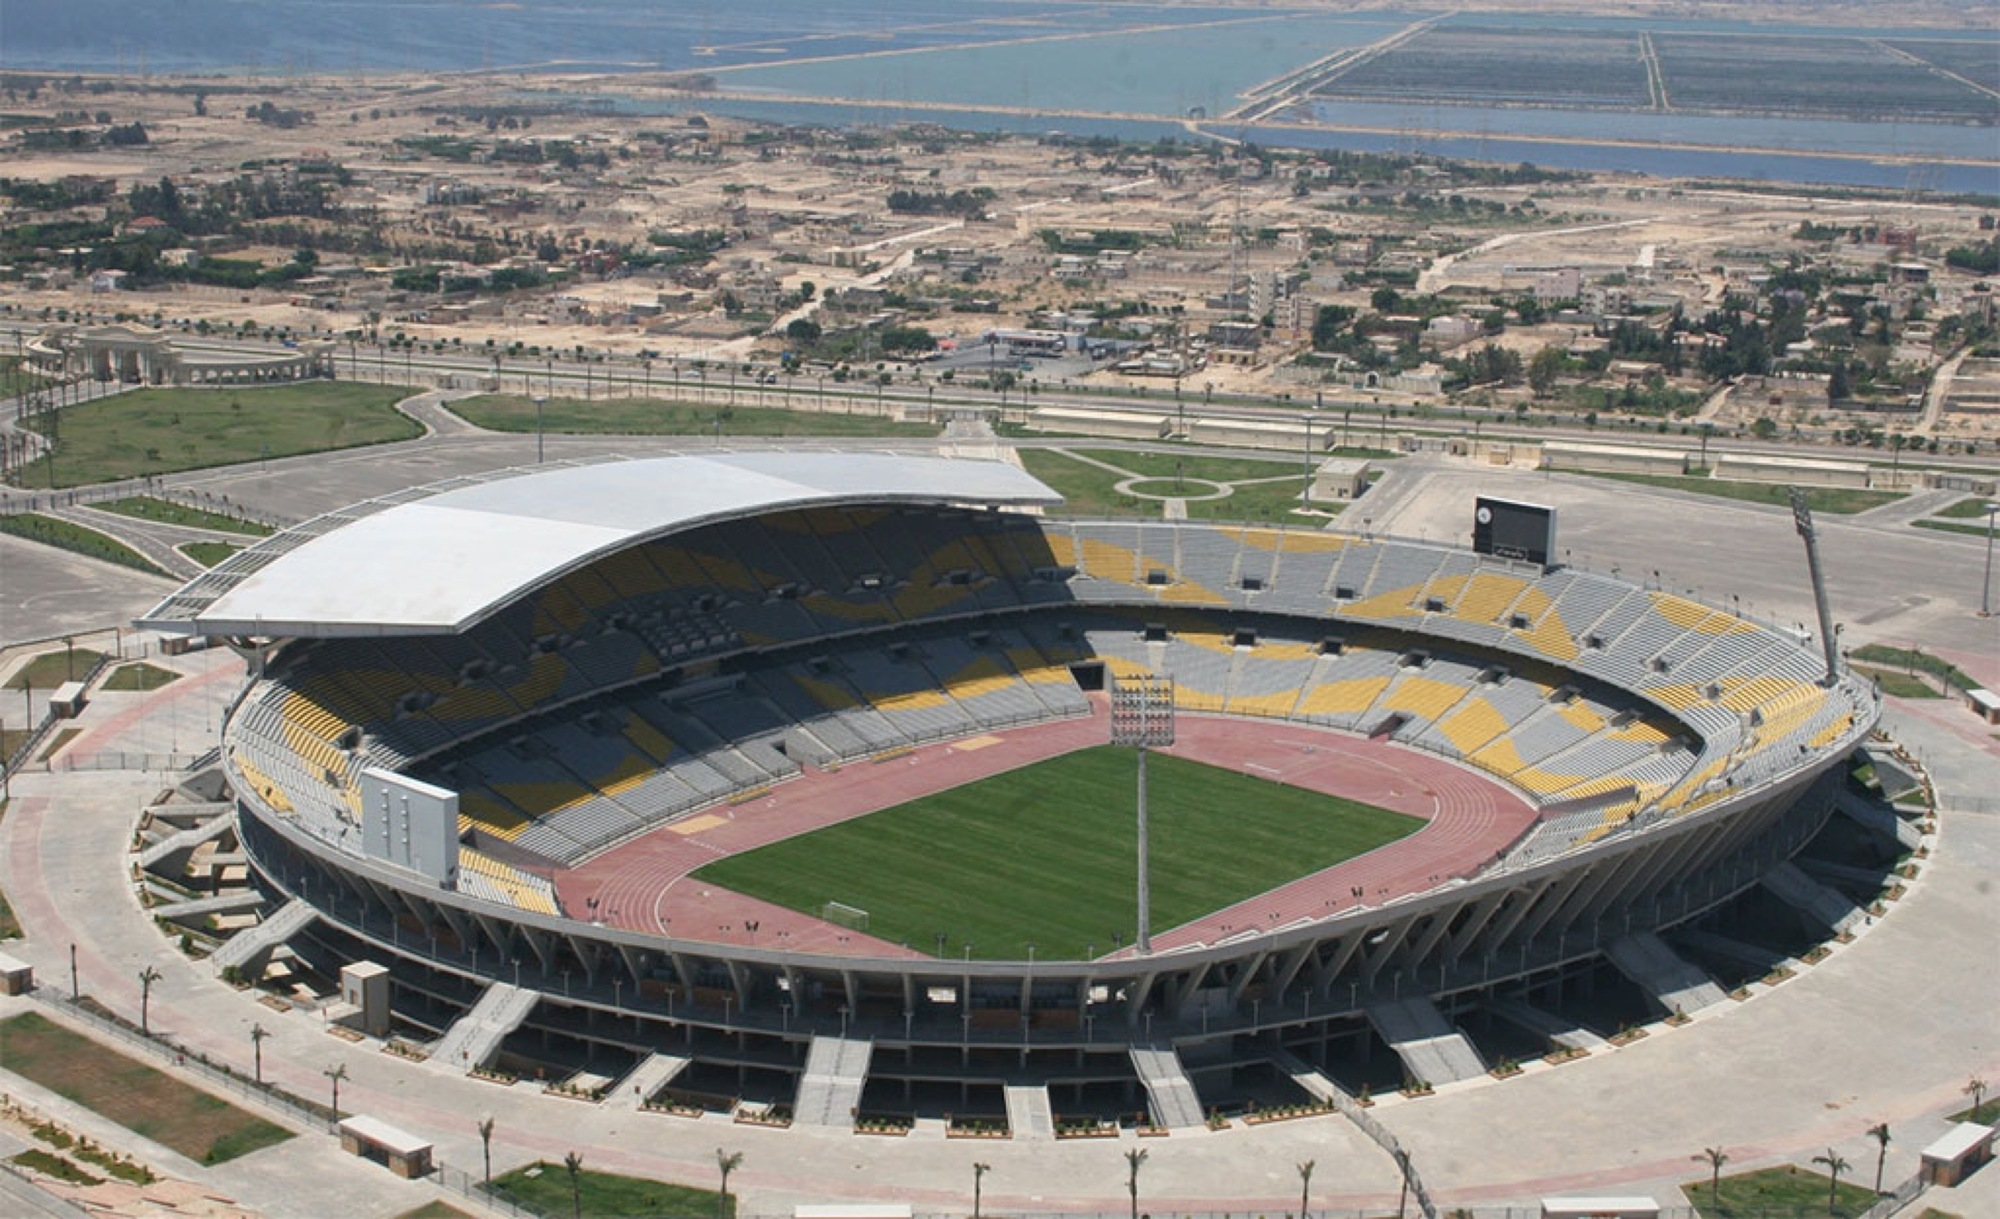 Gallery of The 25 Largest Sports Stadiums in the World - 21